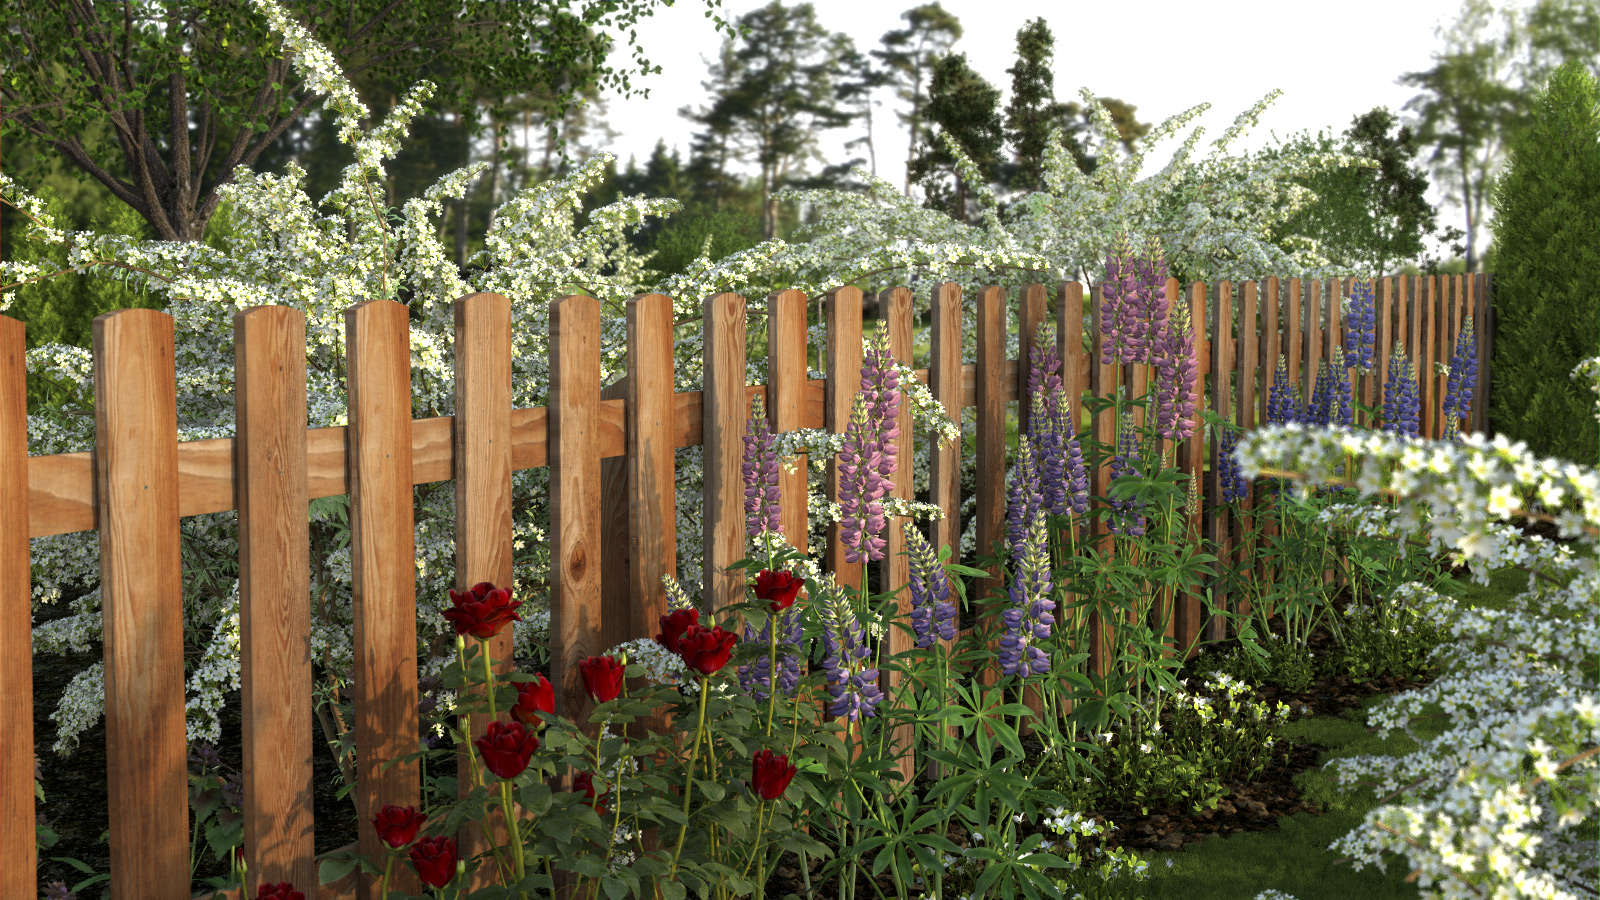 xfrog beautiful flowers garden fence